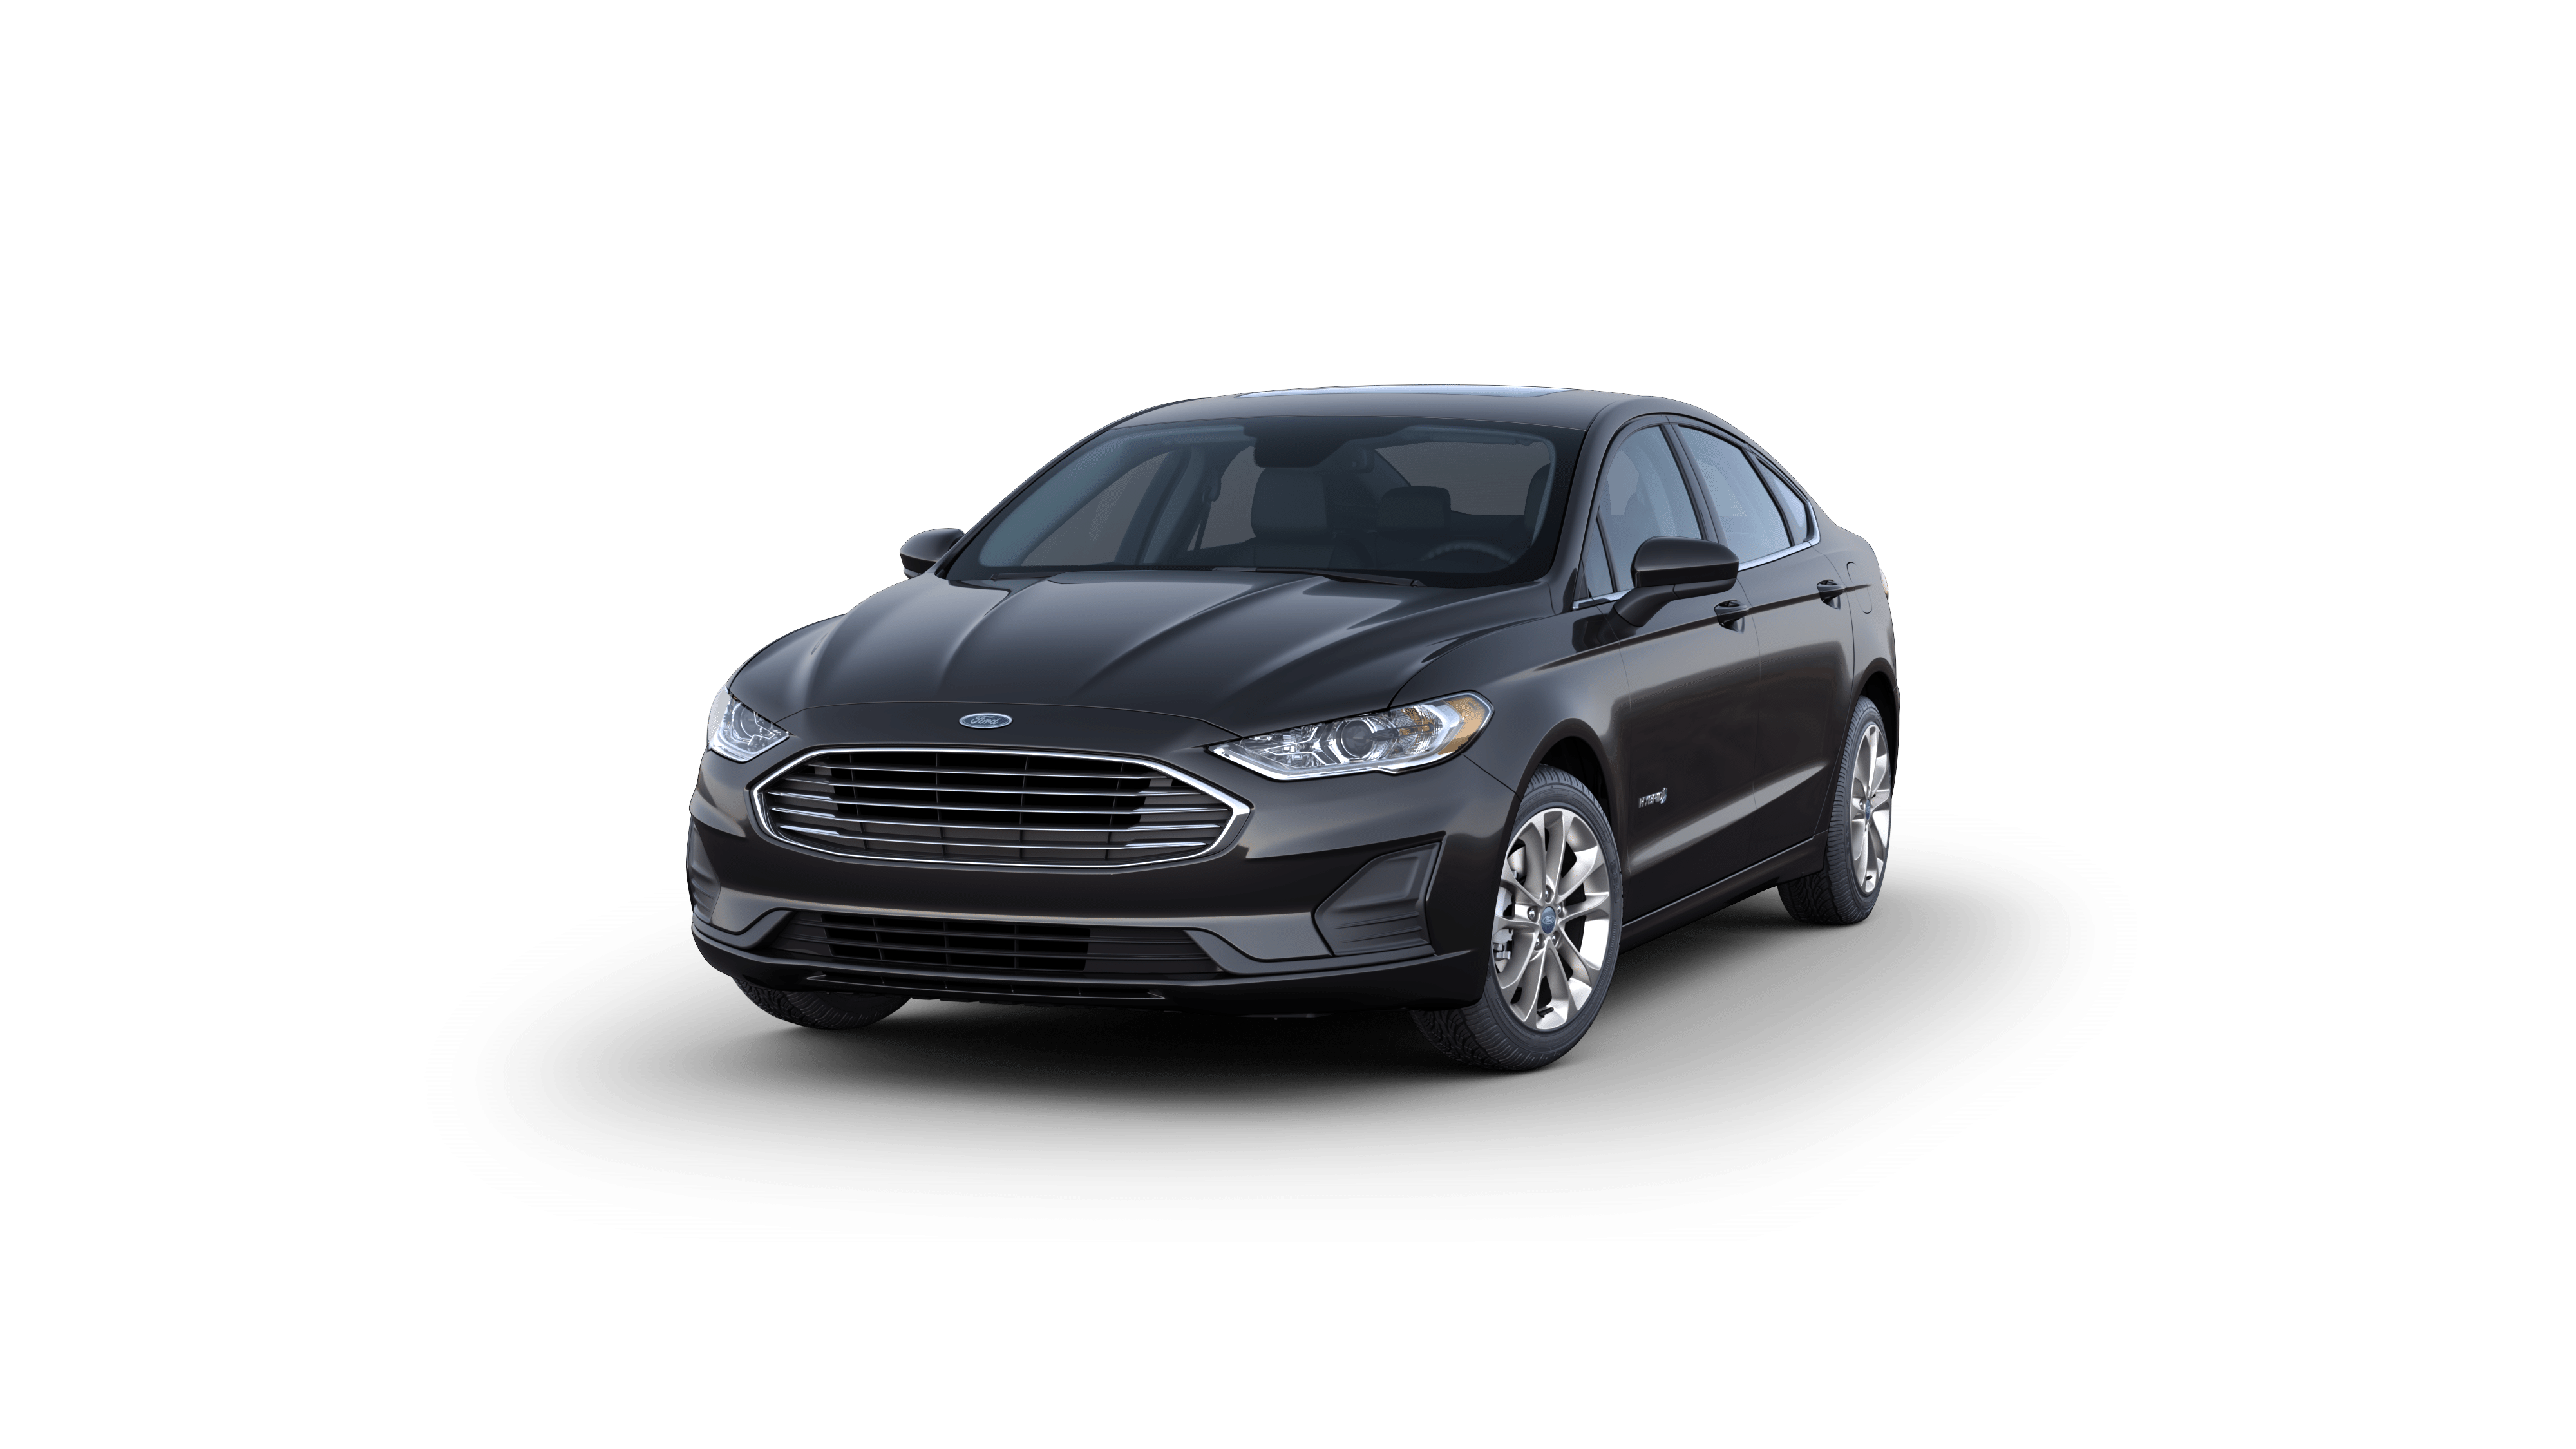 59d6c48f66da0b Souderton - New Ford Fusion Hybrid Vehicles for Sale at Ciocca Ford ...